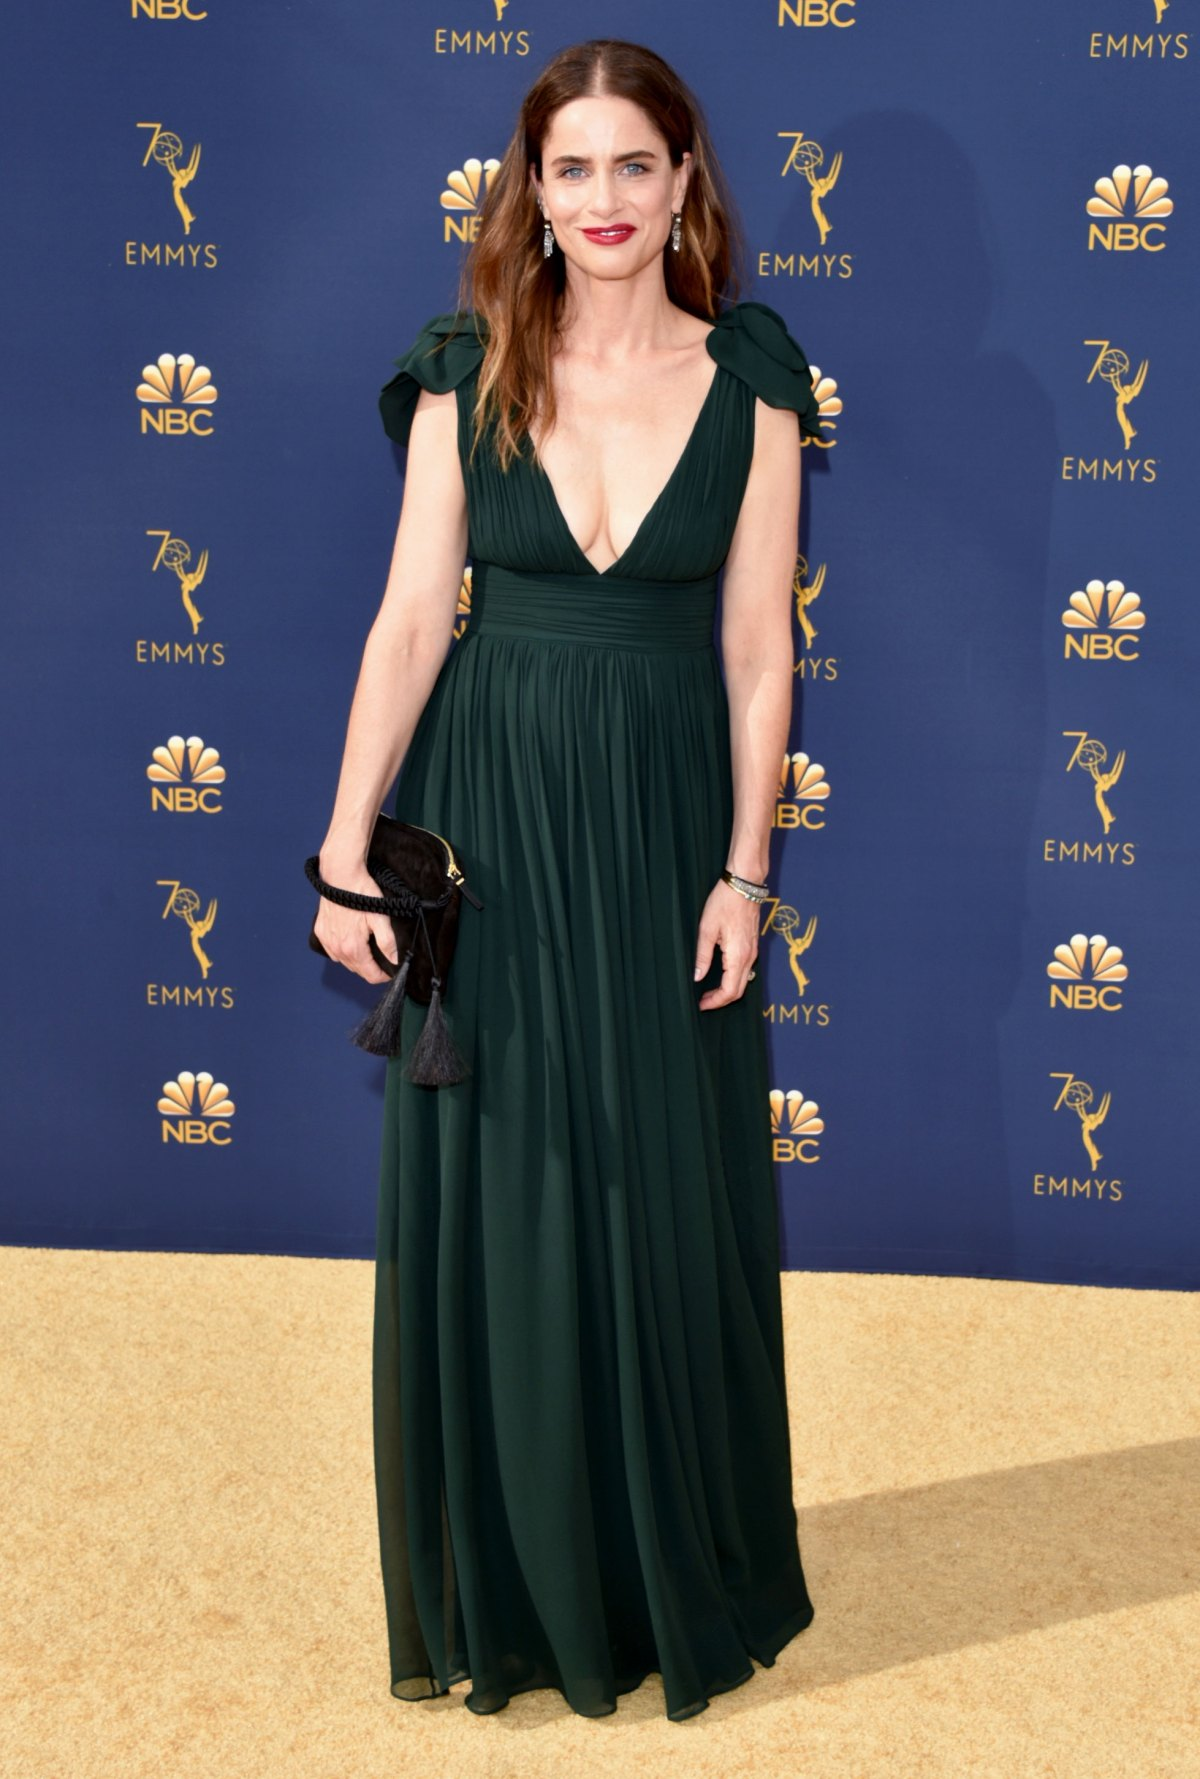 c414d22dfd9f0 Emmys 2018 Red Carpet Fashion: See Celeb Dresses, Gowns